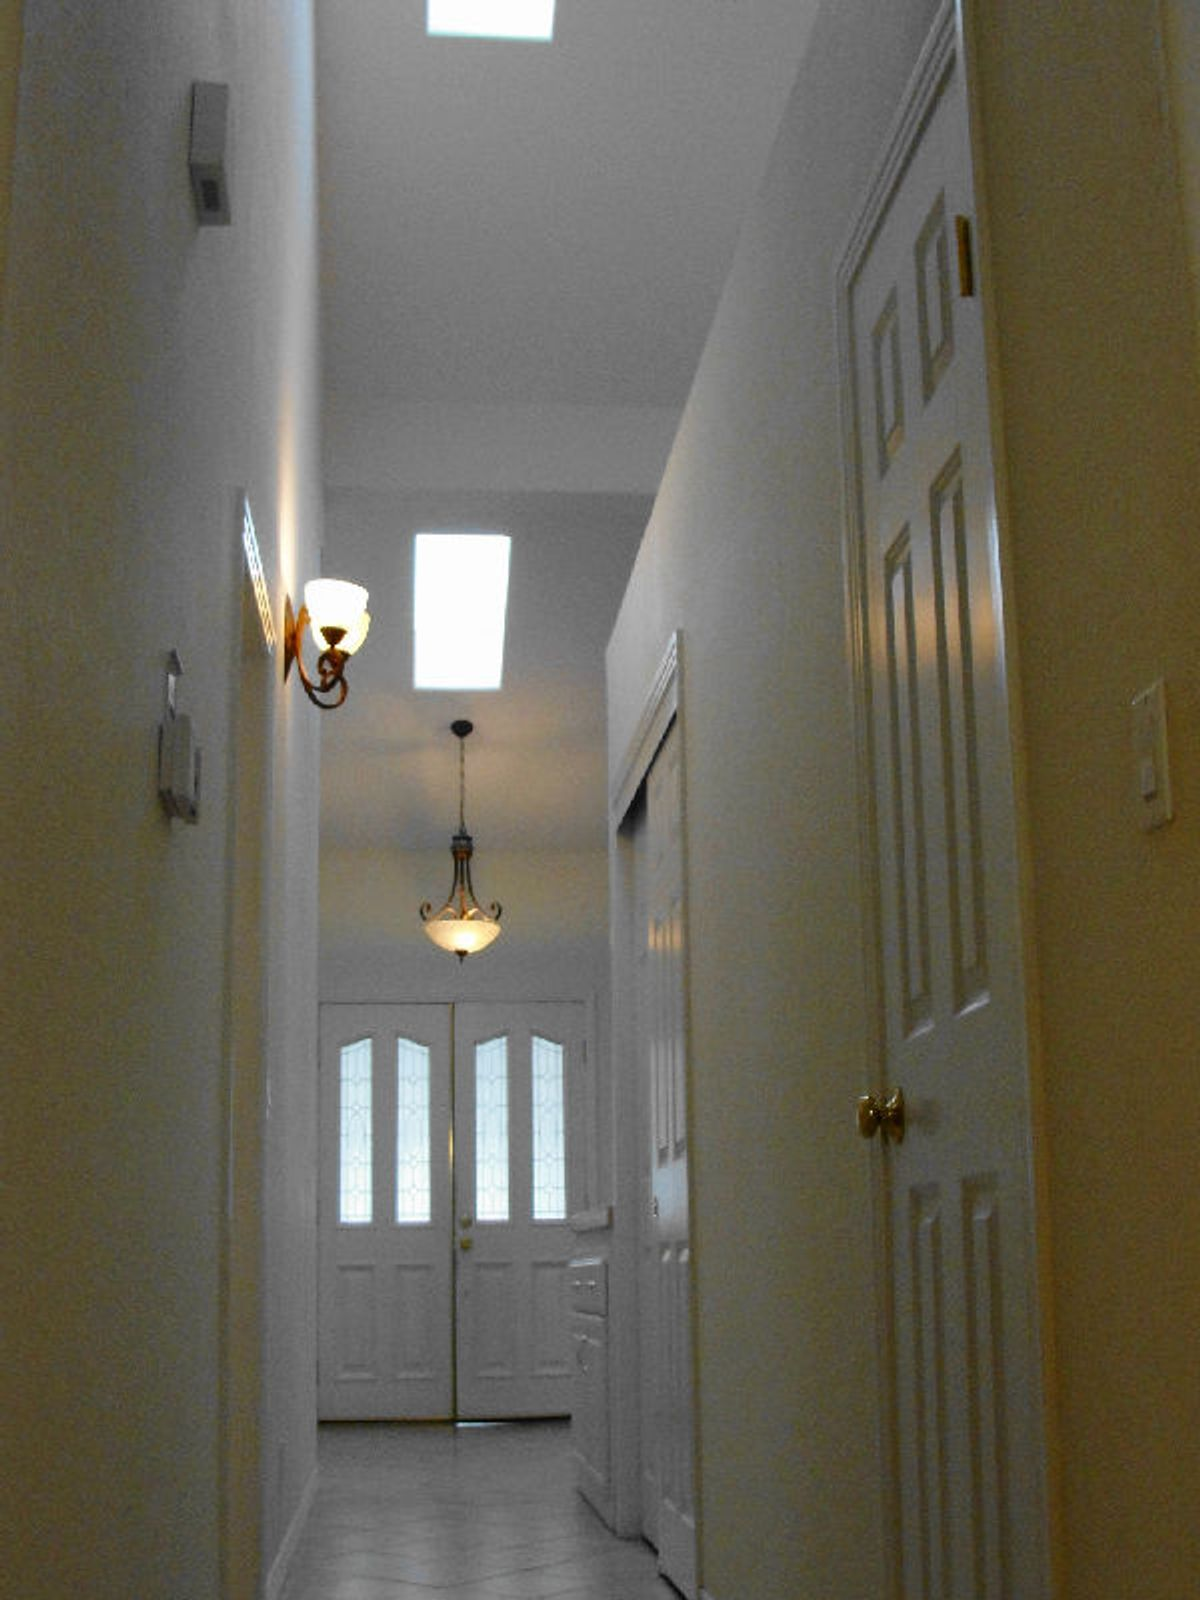 Skylight, tile floors and double front entry doors